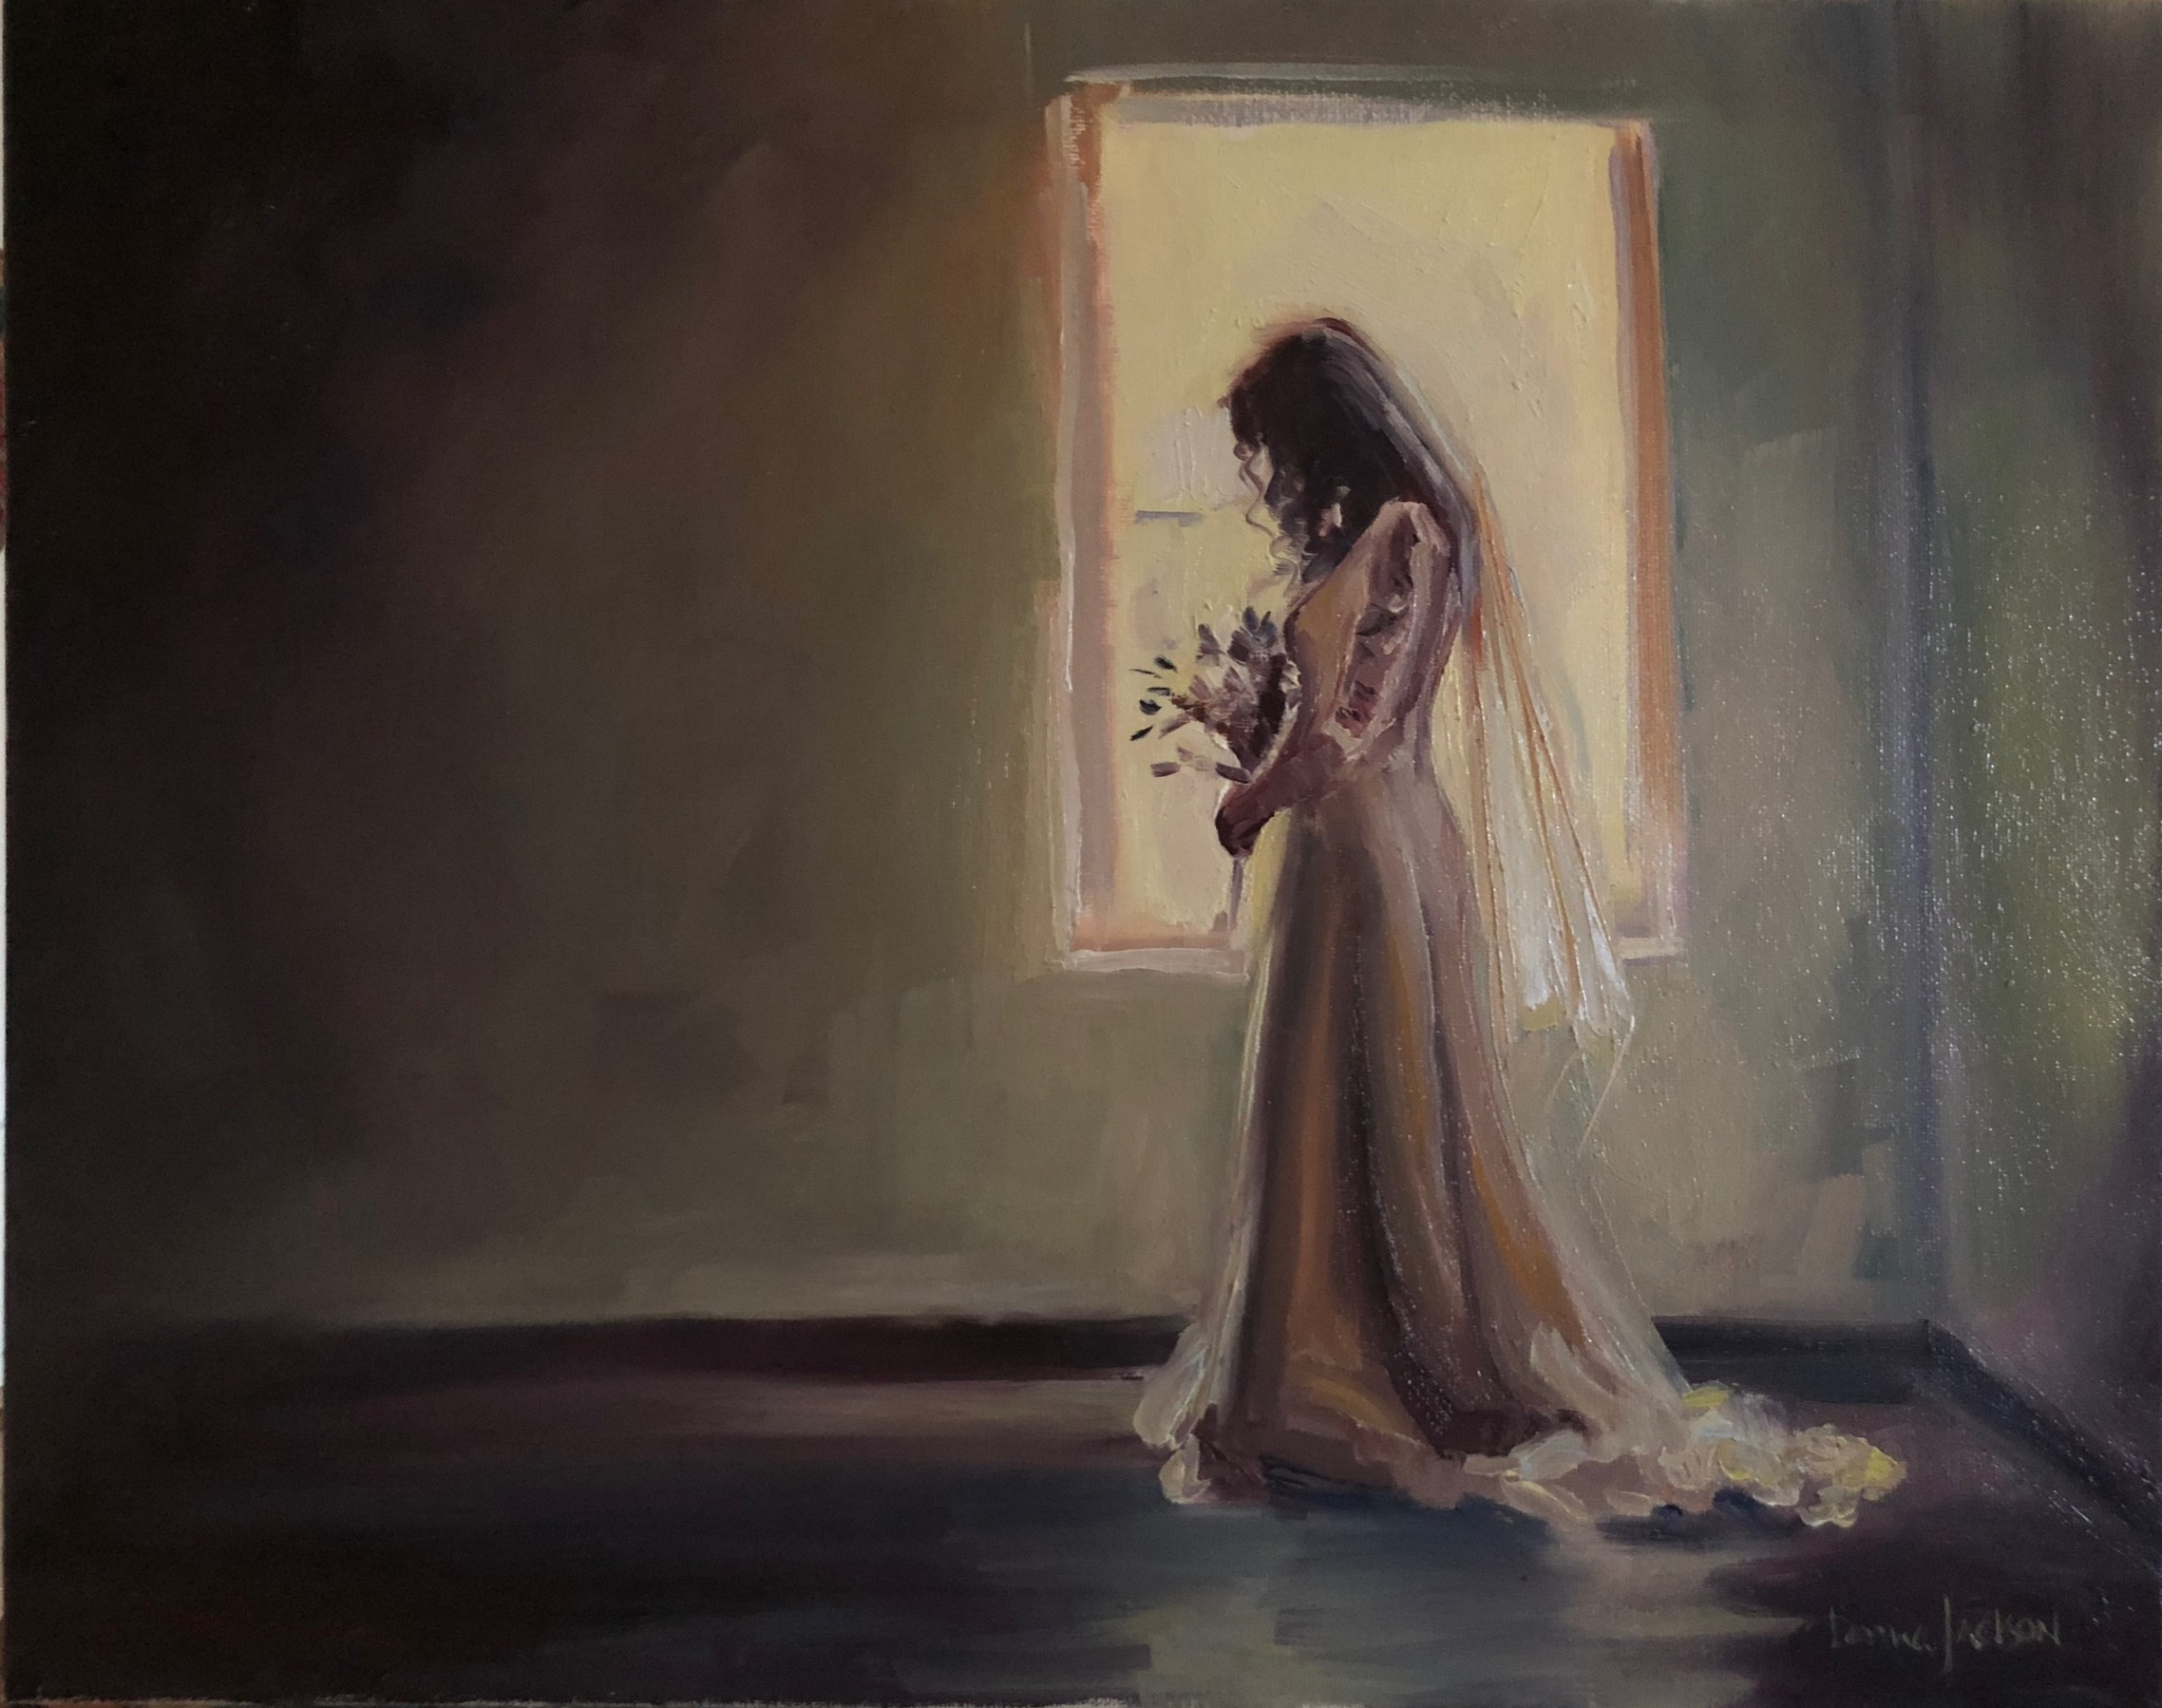 Our wedding ceremony was beautiful, but when I received this painting, it completely took my breath away. The peace and beauty of this day is translated perfectly through this painting. I'm in LOVE!  Kathleen Careara